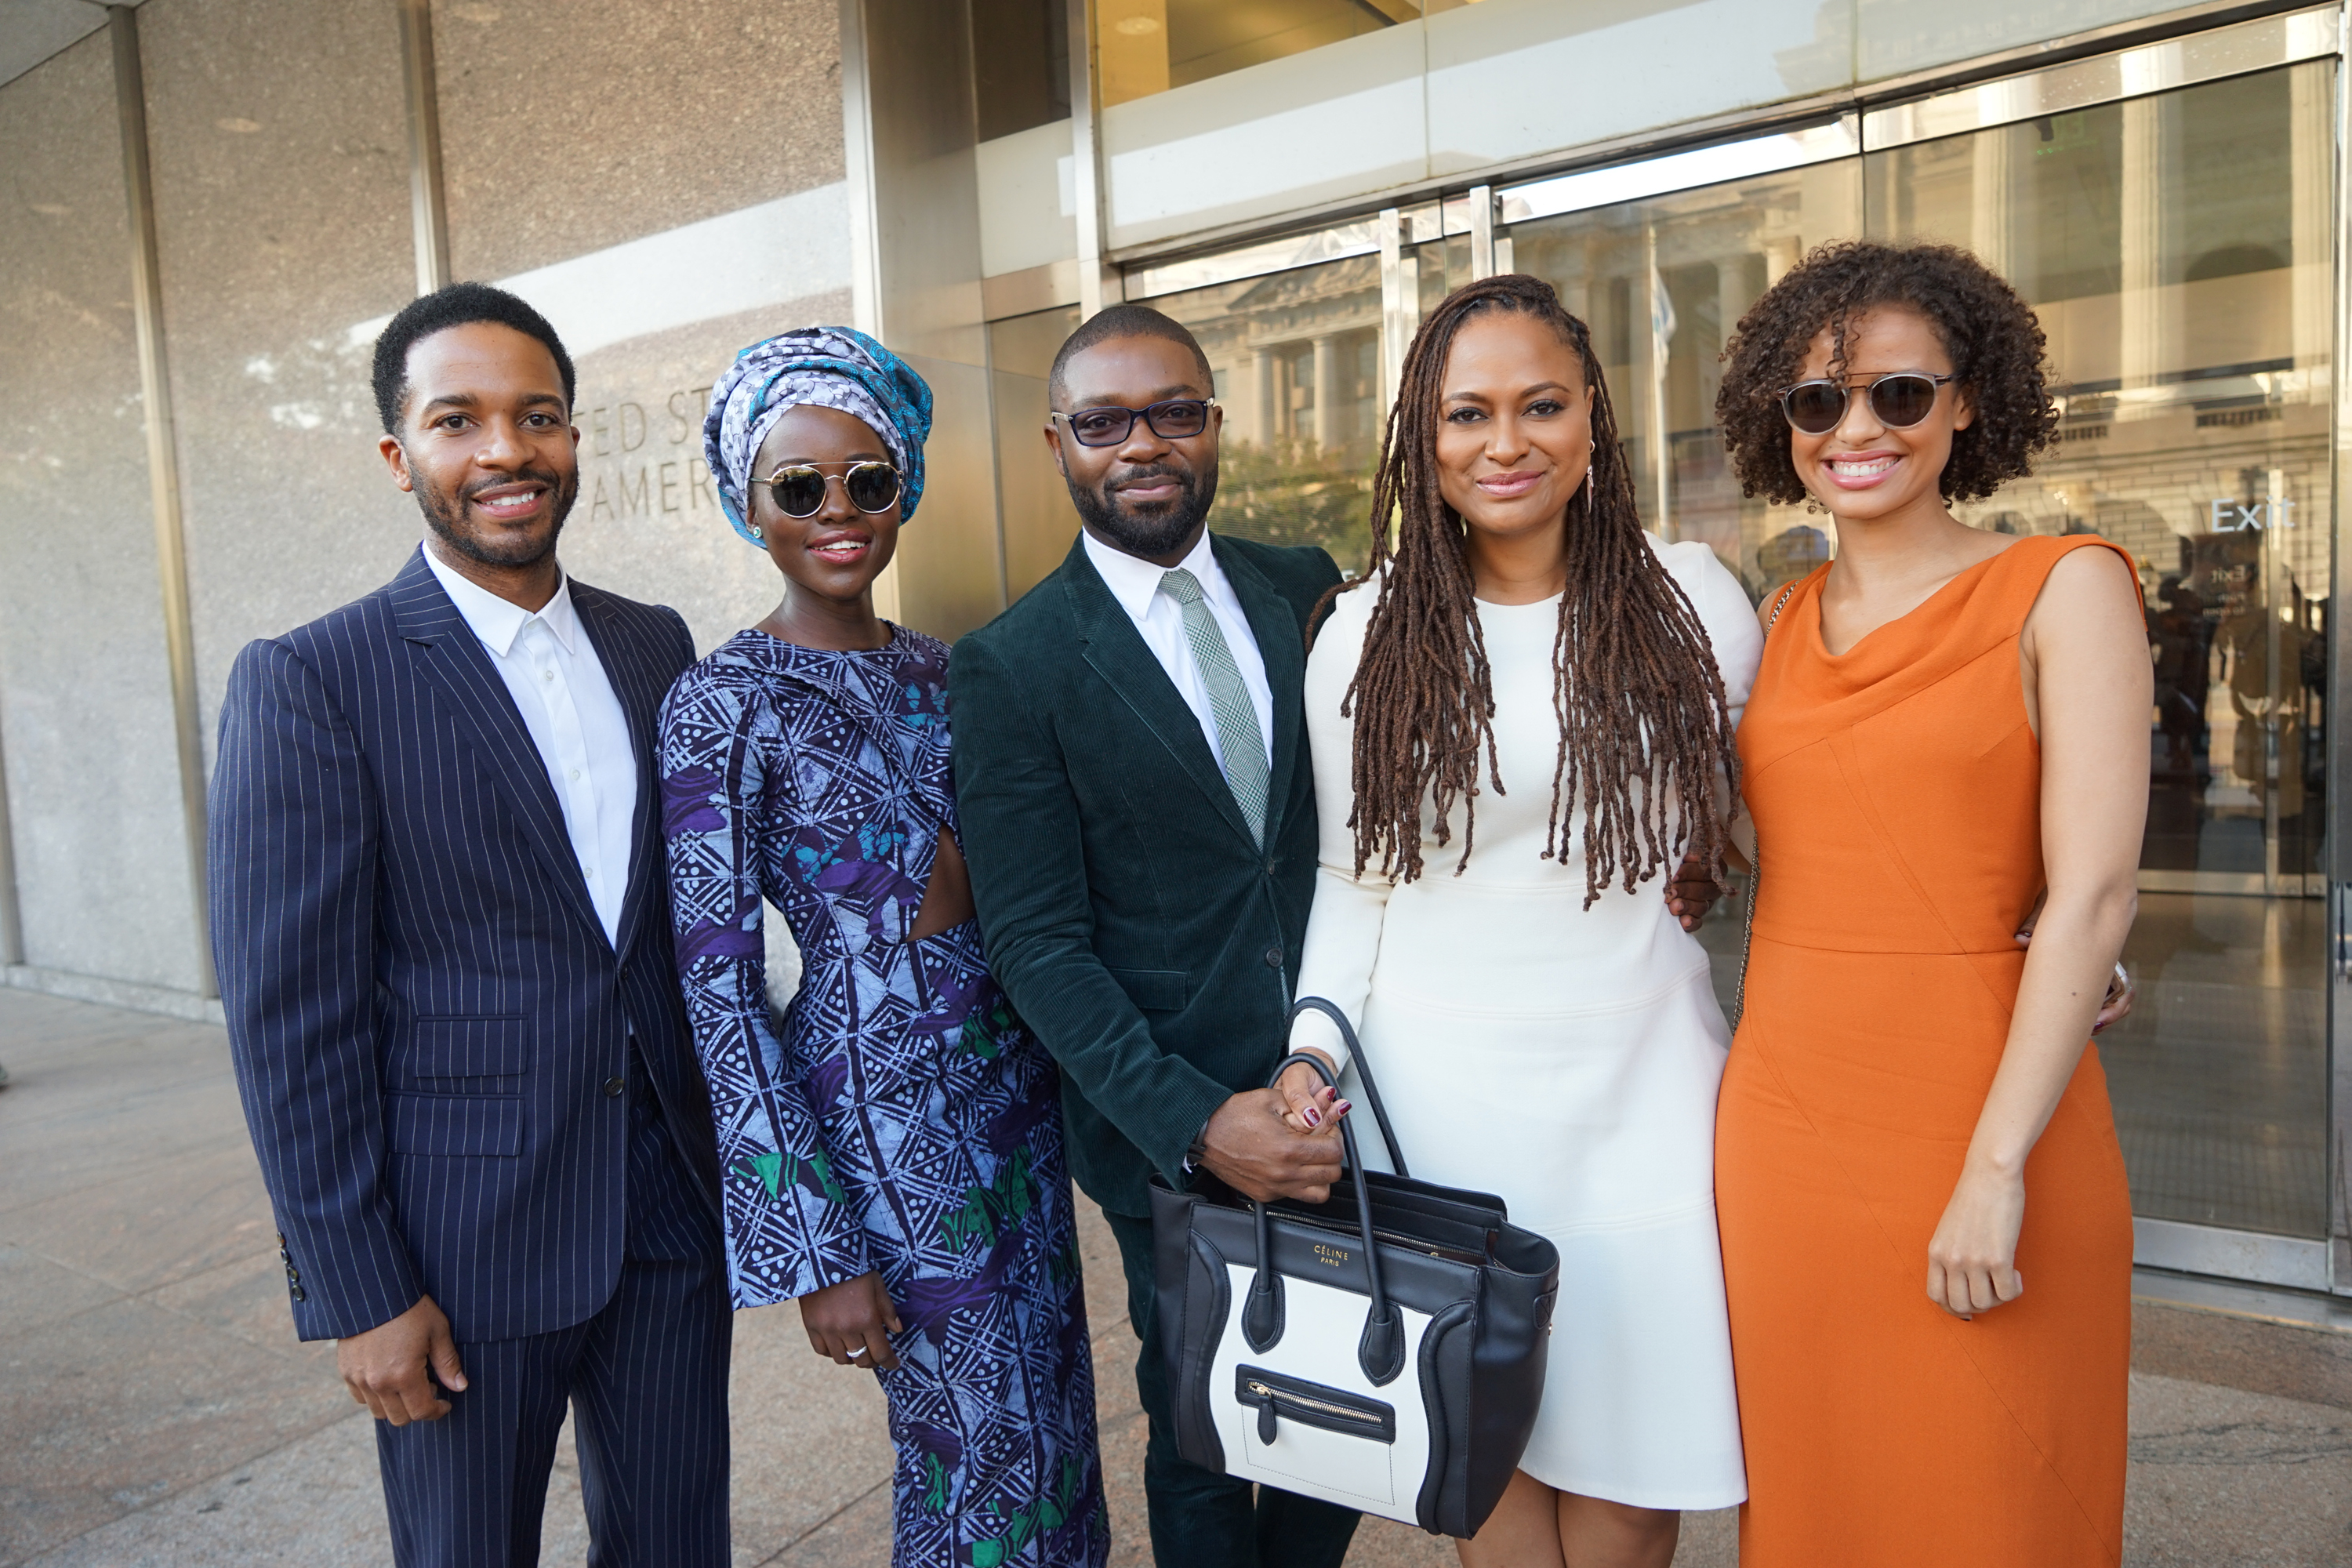 WASHINGTON, DC - SEPTEMBER 24: Andre Holland, Lupita Nyong'o, David Oyelowo, Ava Duvernay and Gugu Mbatha-Raw attends the opening of the National Museum of African American History and Culture on September 24, 2016 in Washington, DC.